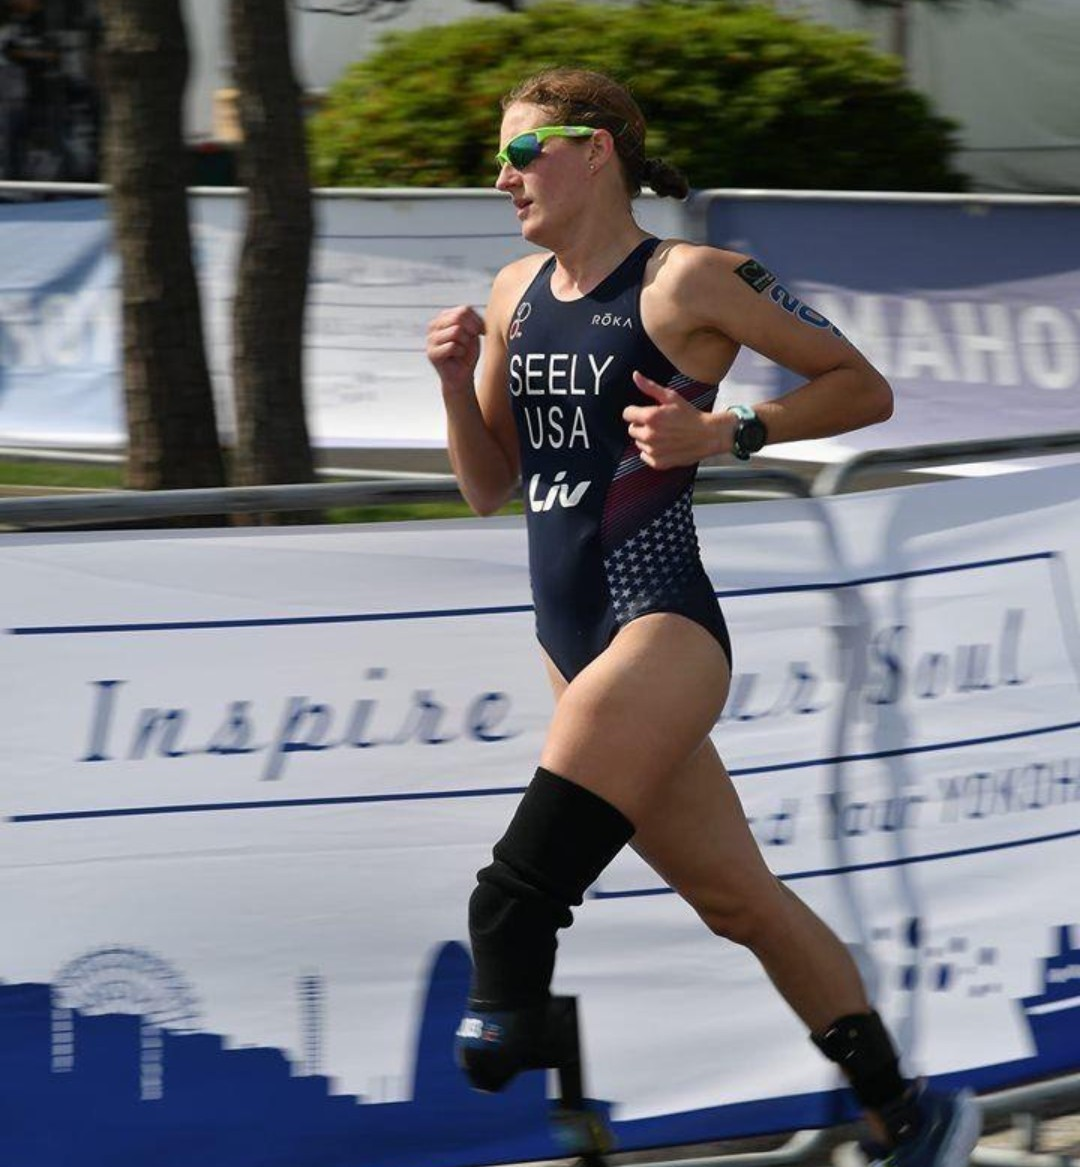 Allysa Seely graduated from @ASU in 2013 with an interdisciplinary studies degree. A #Paralympic triathlon gold medalist and #ESPY winner, she has been making history since graduating.Read more from an interview with this @sundeviltri @ASU_Alumni:http://ow.ly/24We50ywDVS